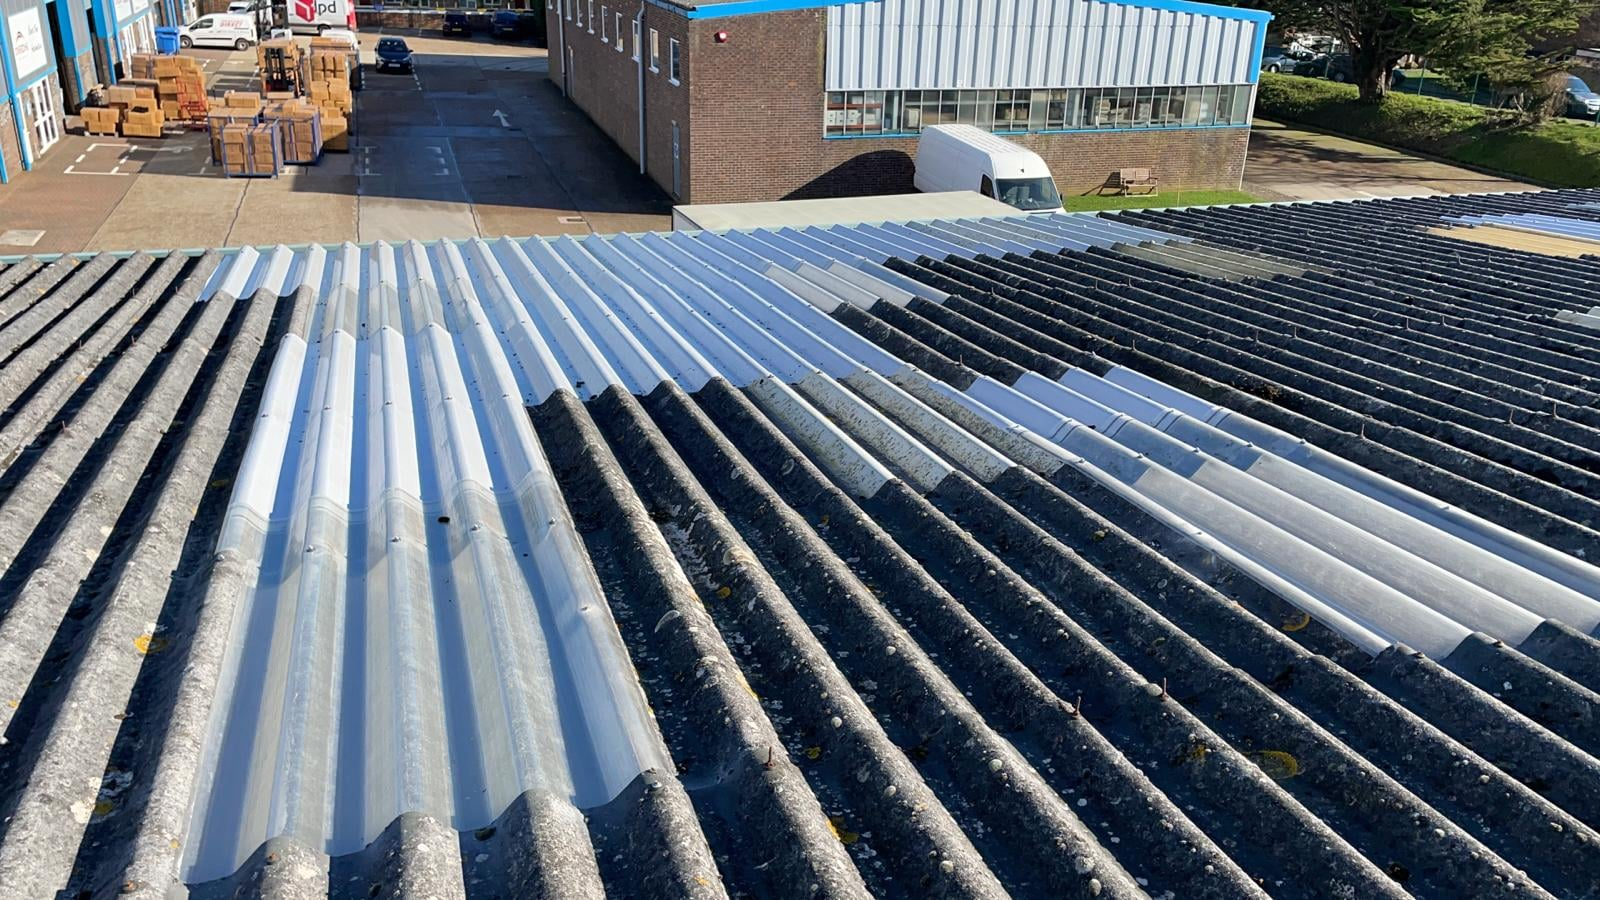 Leaking Roof Repairs on a Warehouse roof in Sompting Worthing West Sussex